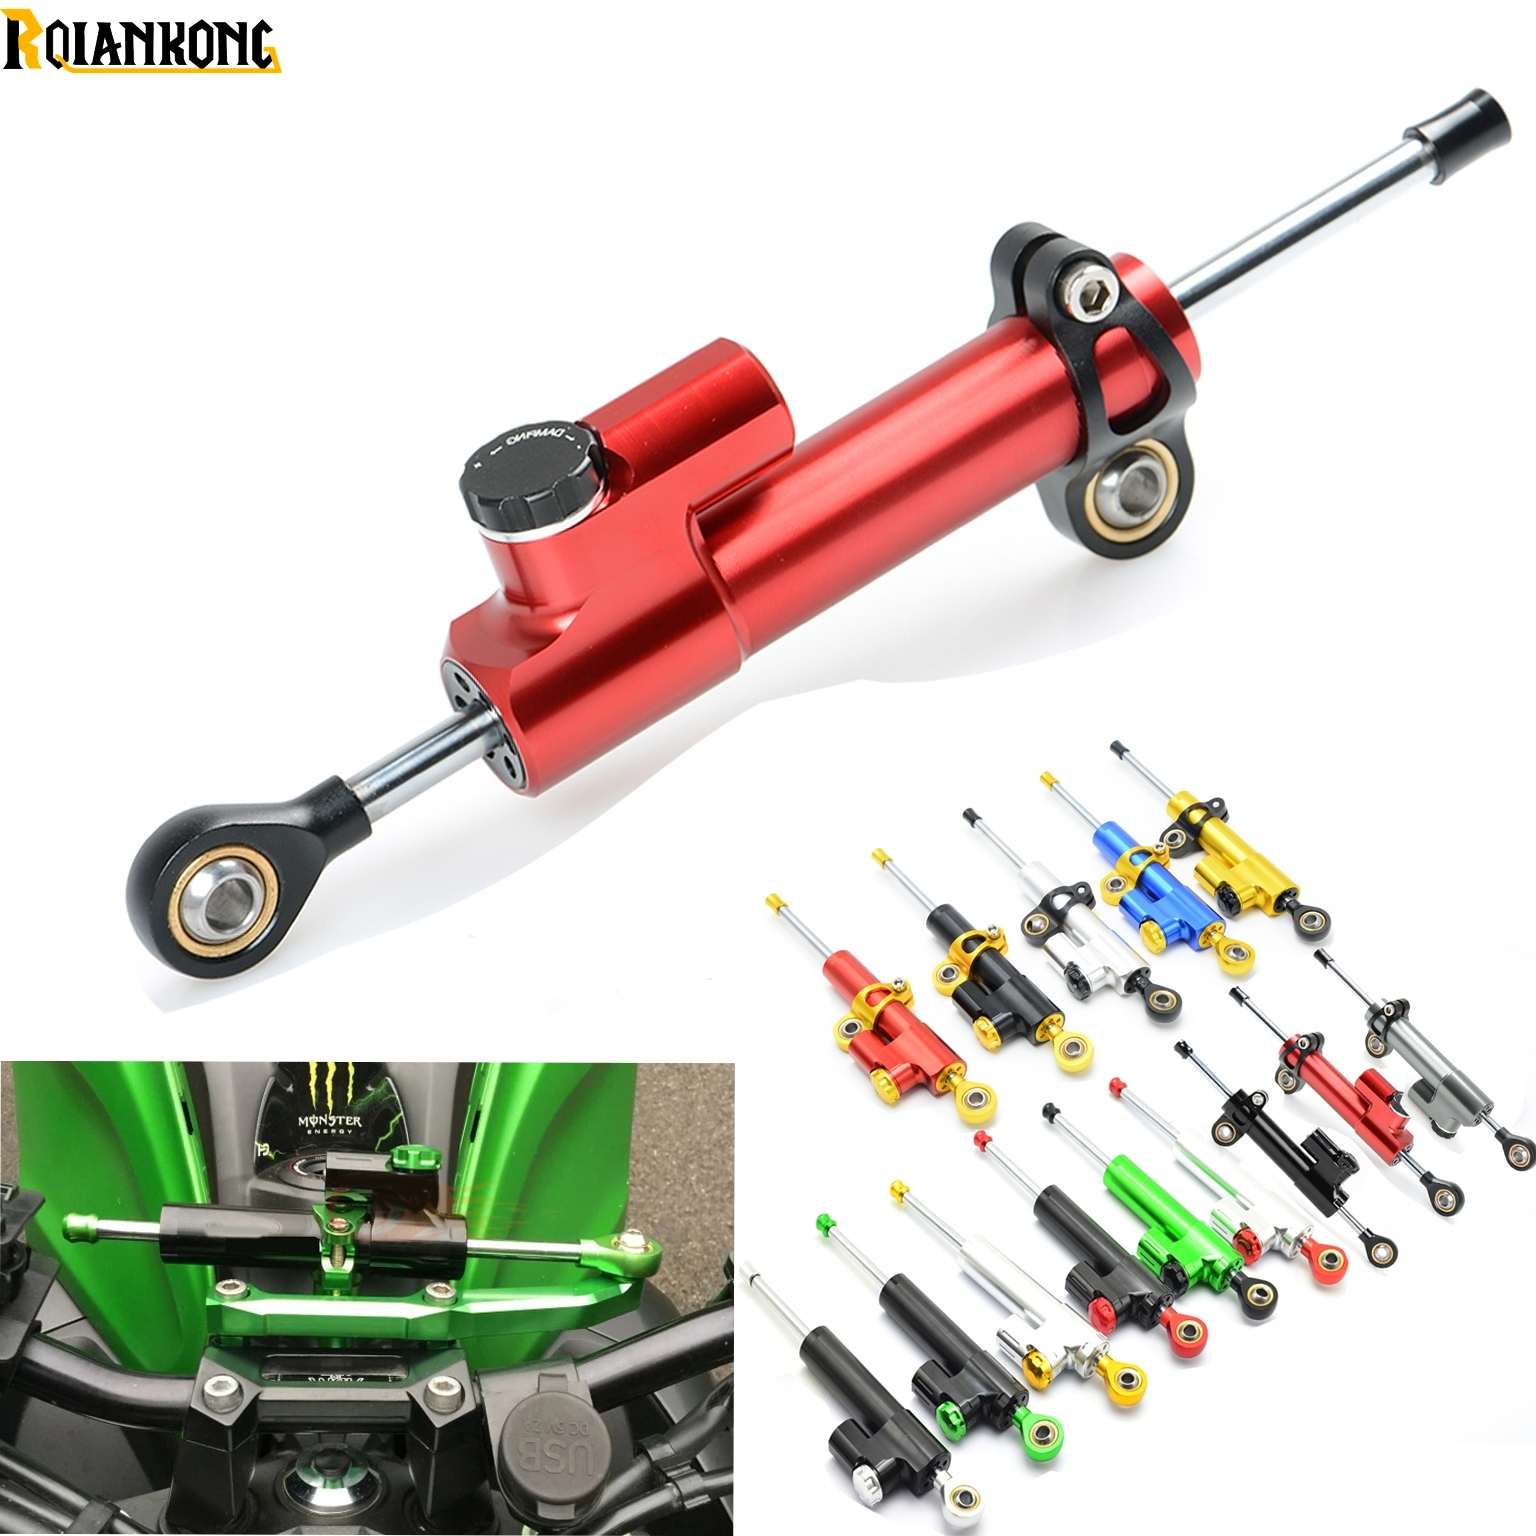 CNC Aluminum Motorcycle Steering Damper Stabilizer Linear Safe Control for Ducati Monster M400 M600 M620 M750 M900 S2R M750IE<br>